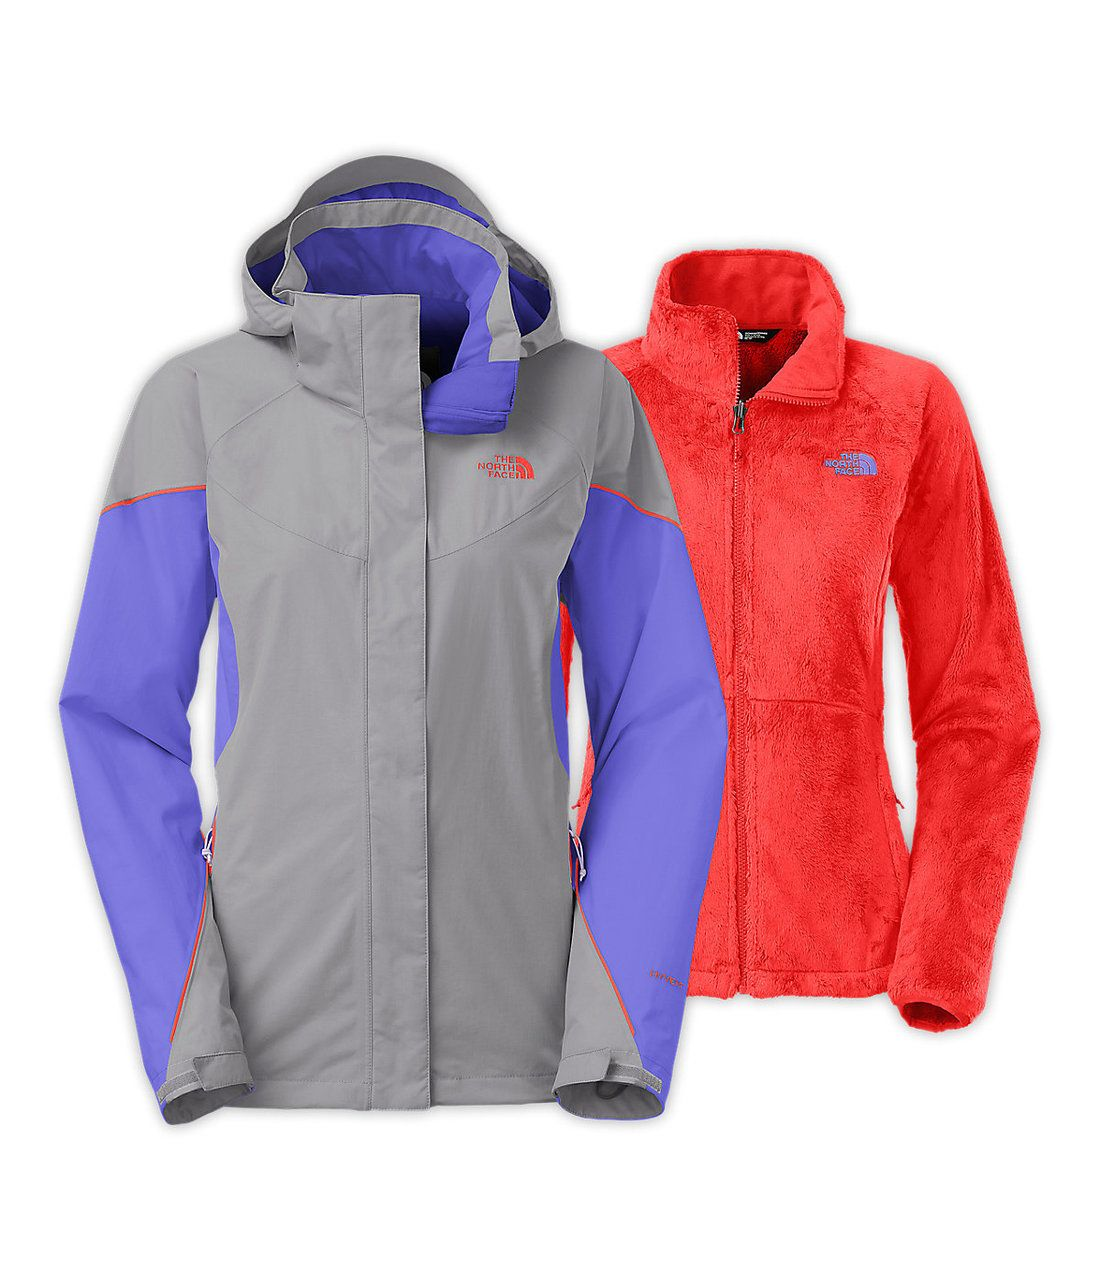 0ce260ad2 North Face Women's Boundary Triclimate Jacket in Mid Grey/Starry ...